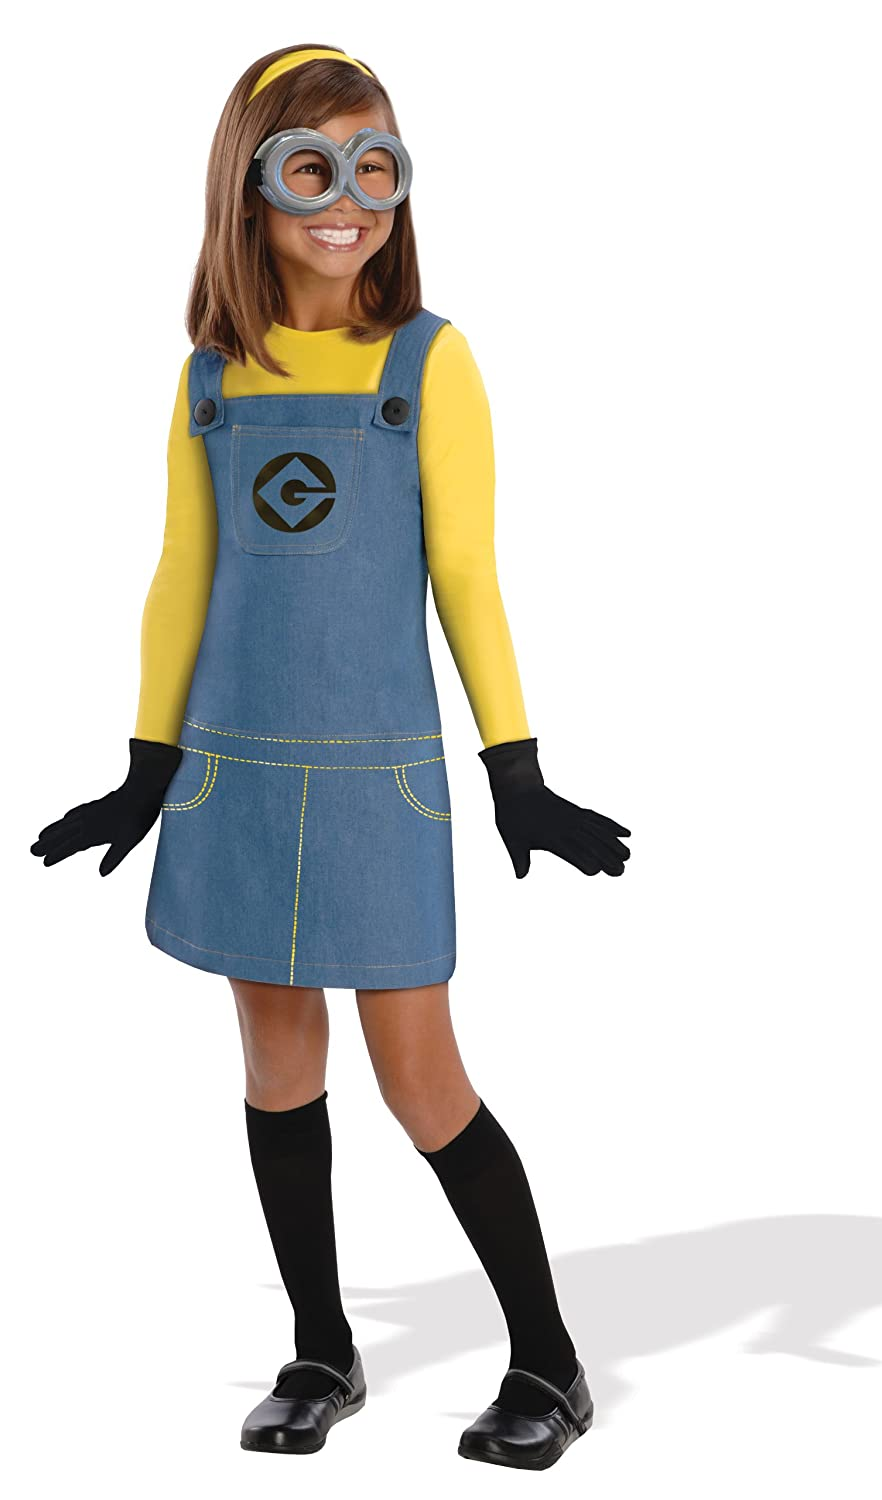 sc 1 st  Amazon.com & Amazon.com: Big Girlsu0027 Minion Costume: Toys u0026 Games